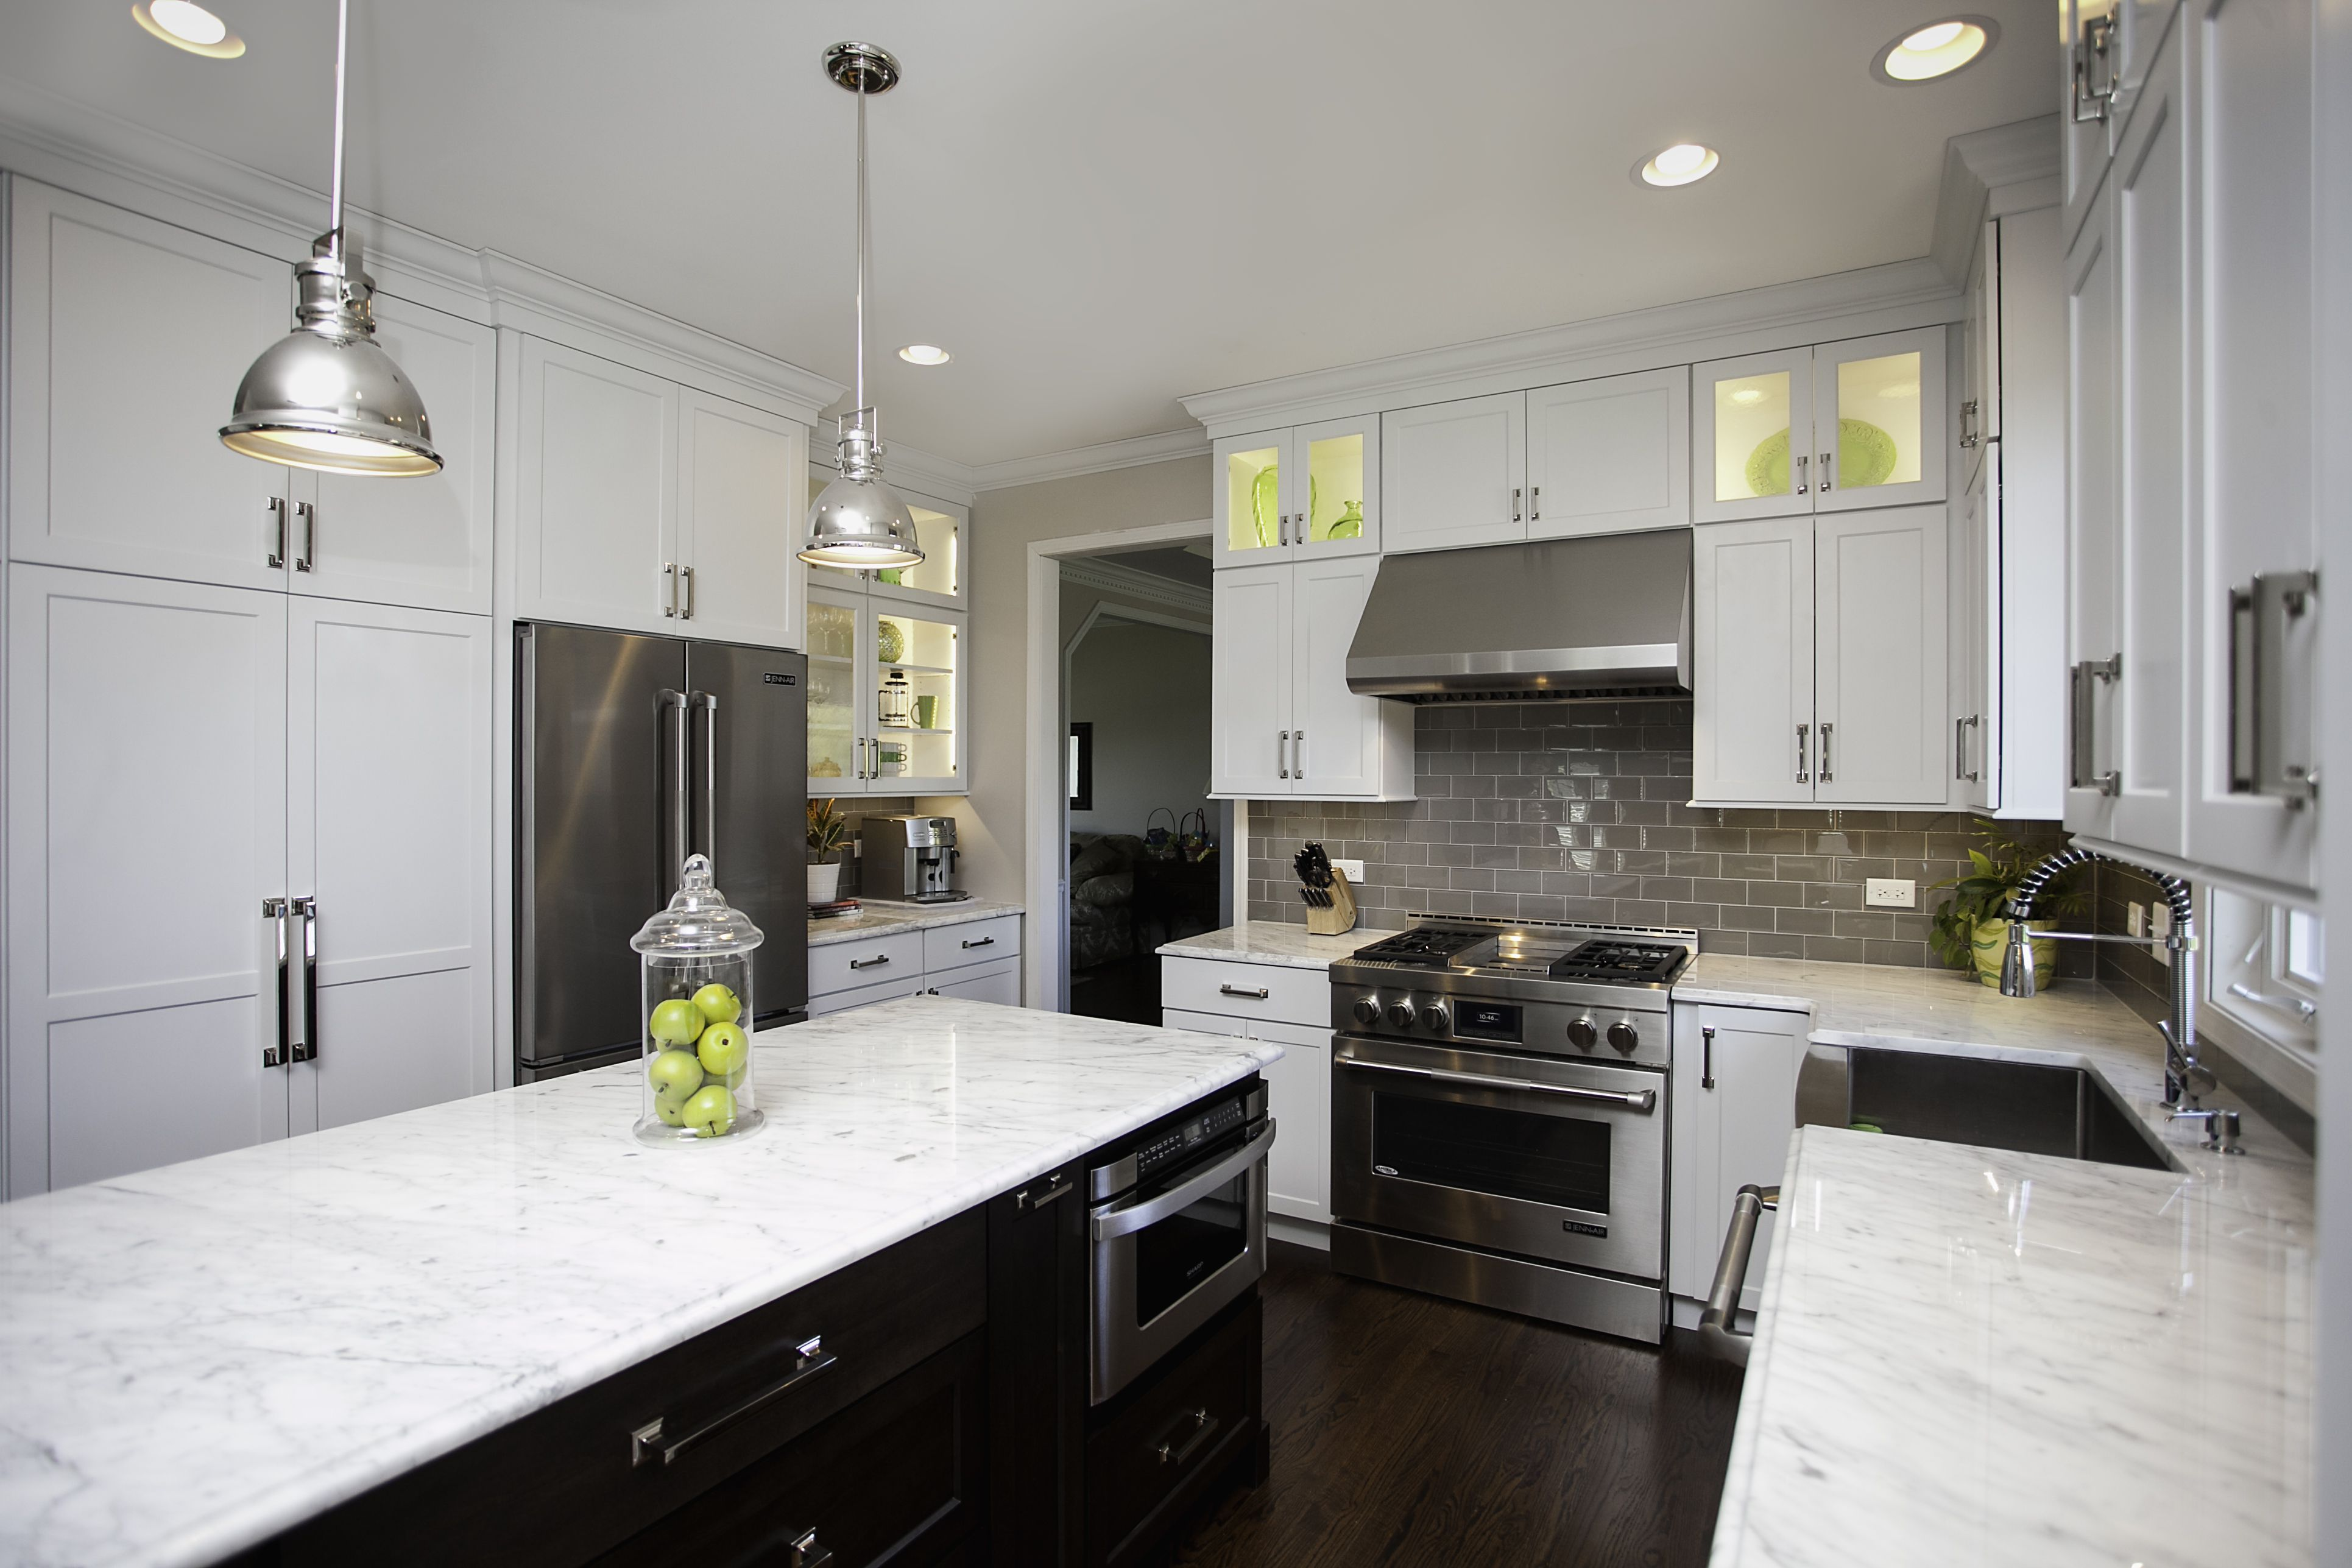 Best Kitchen Gallery: Carrara Marble Tops The Base Cabi S In This Naperville of Kitchen Hood Transitional Styles on rachelxblog.com